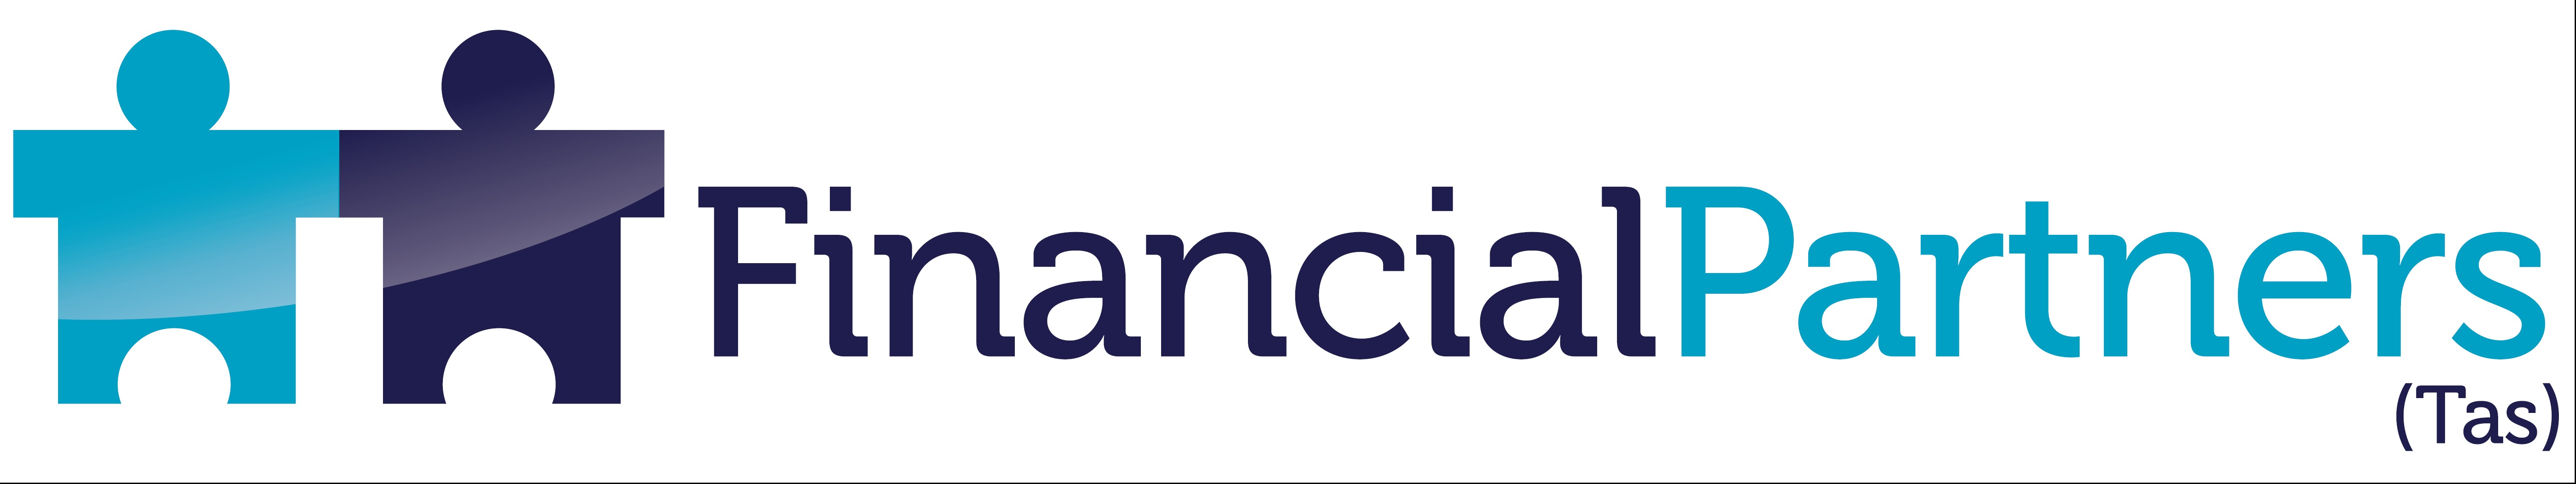 FinancialPartners (Tas) Pty Ltd